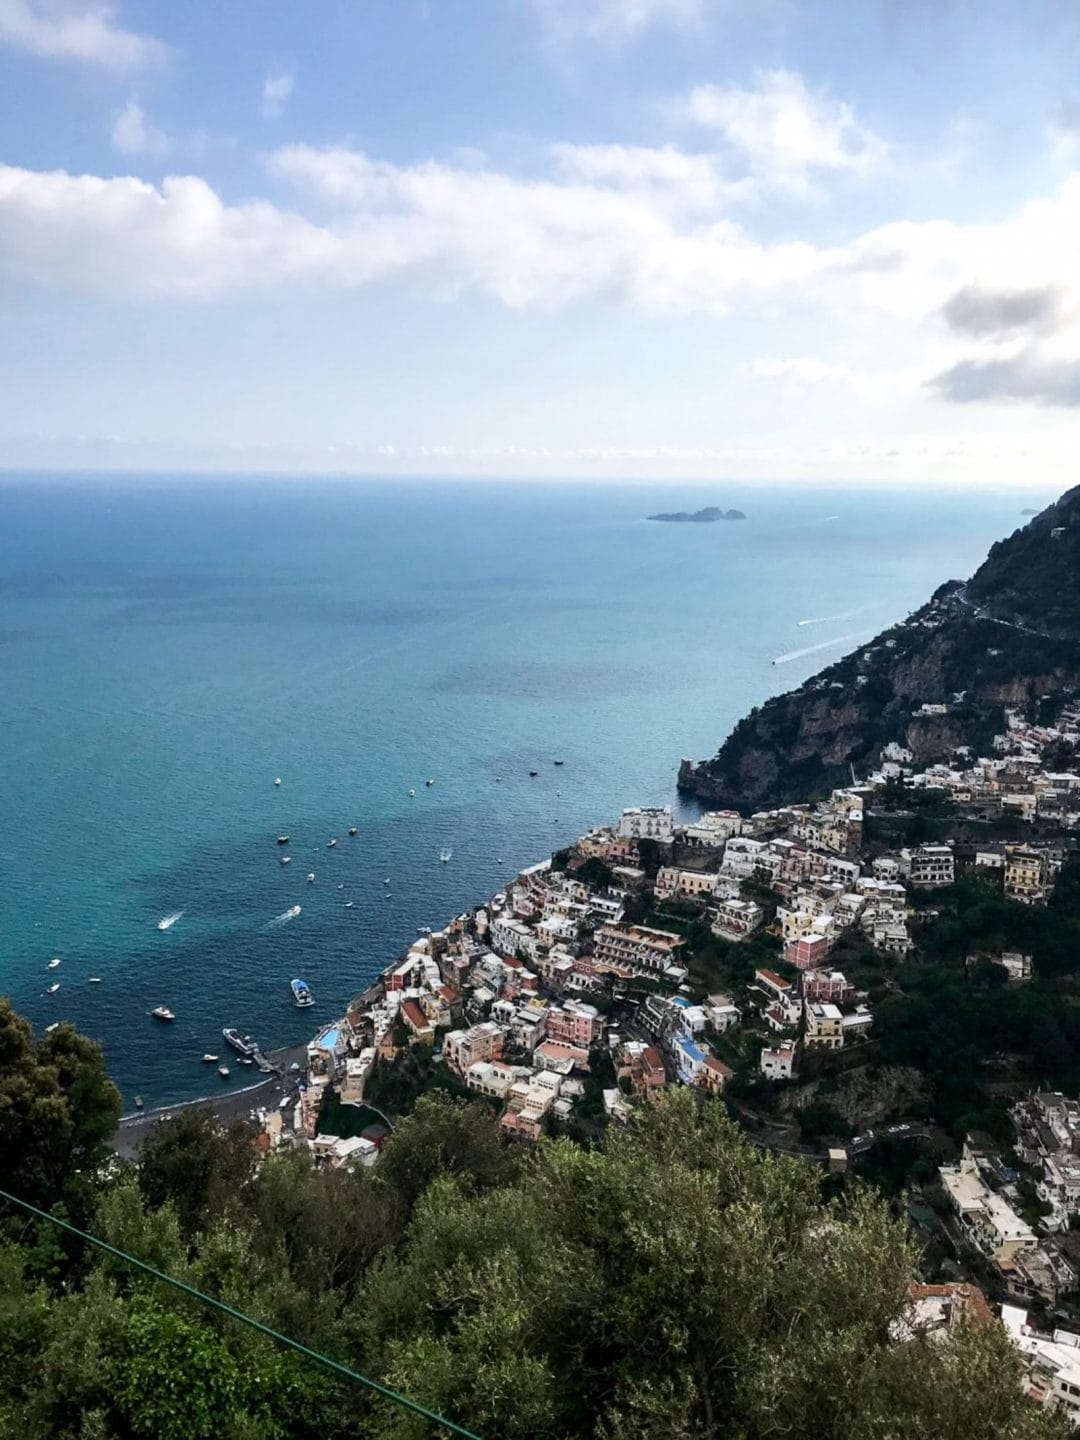 An overhead view of Positano.